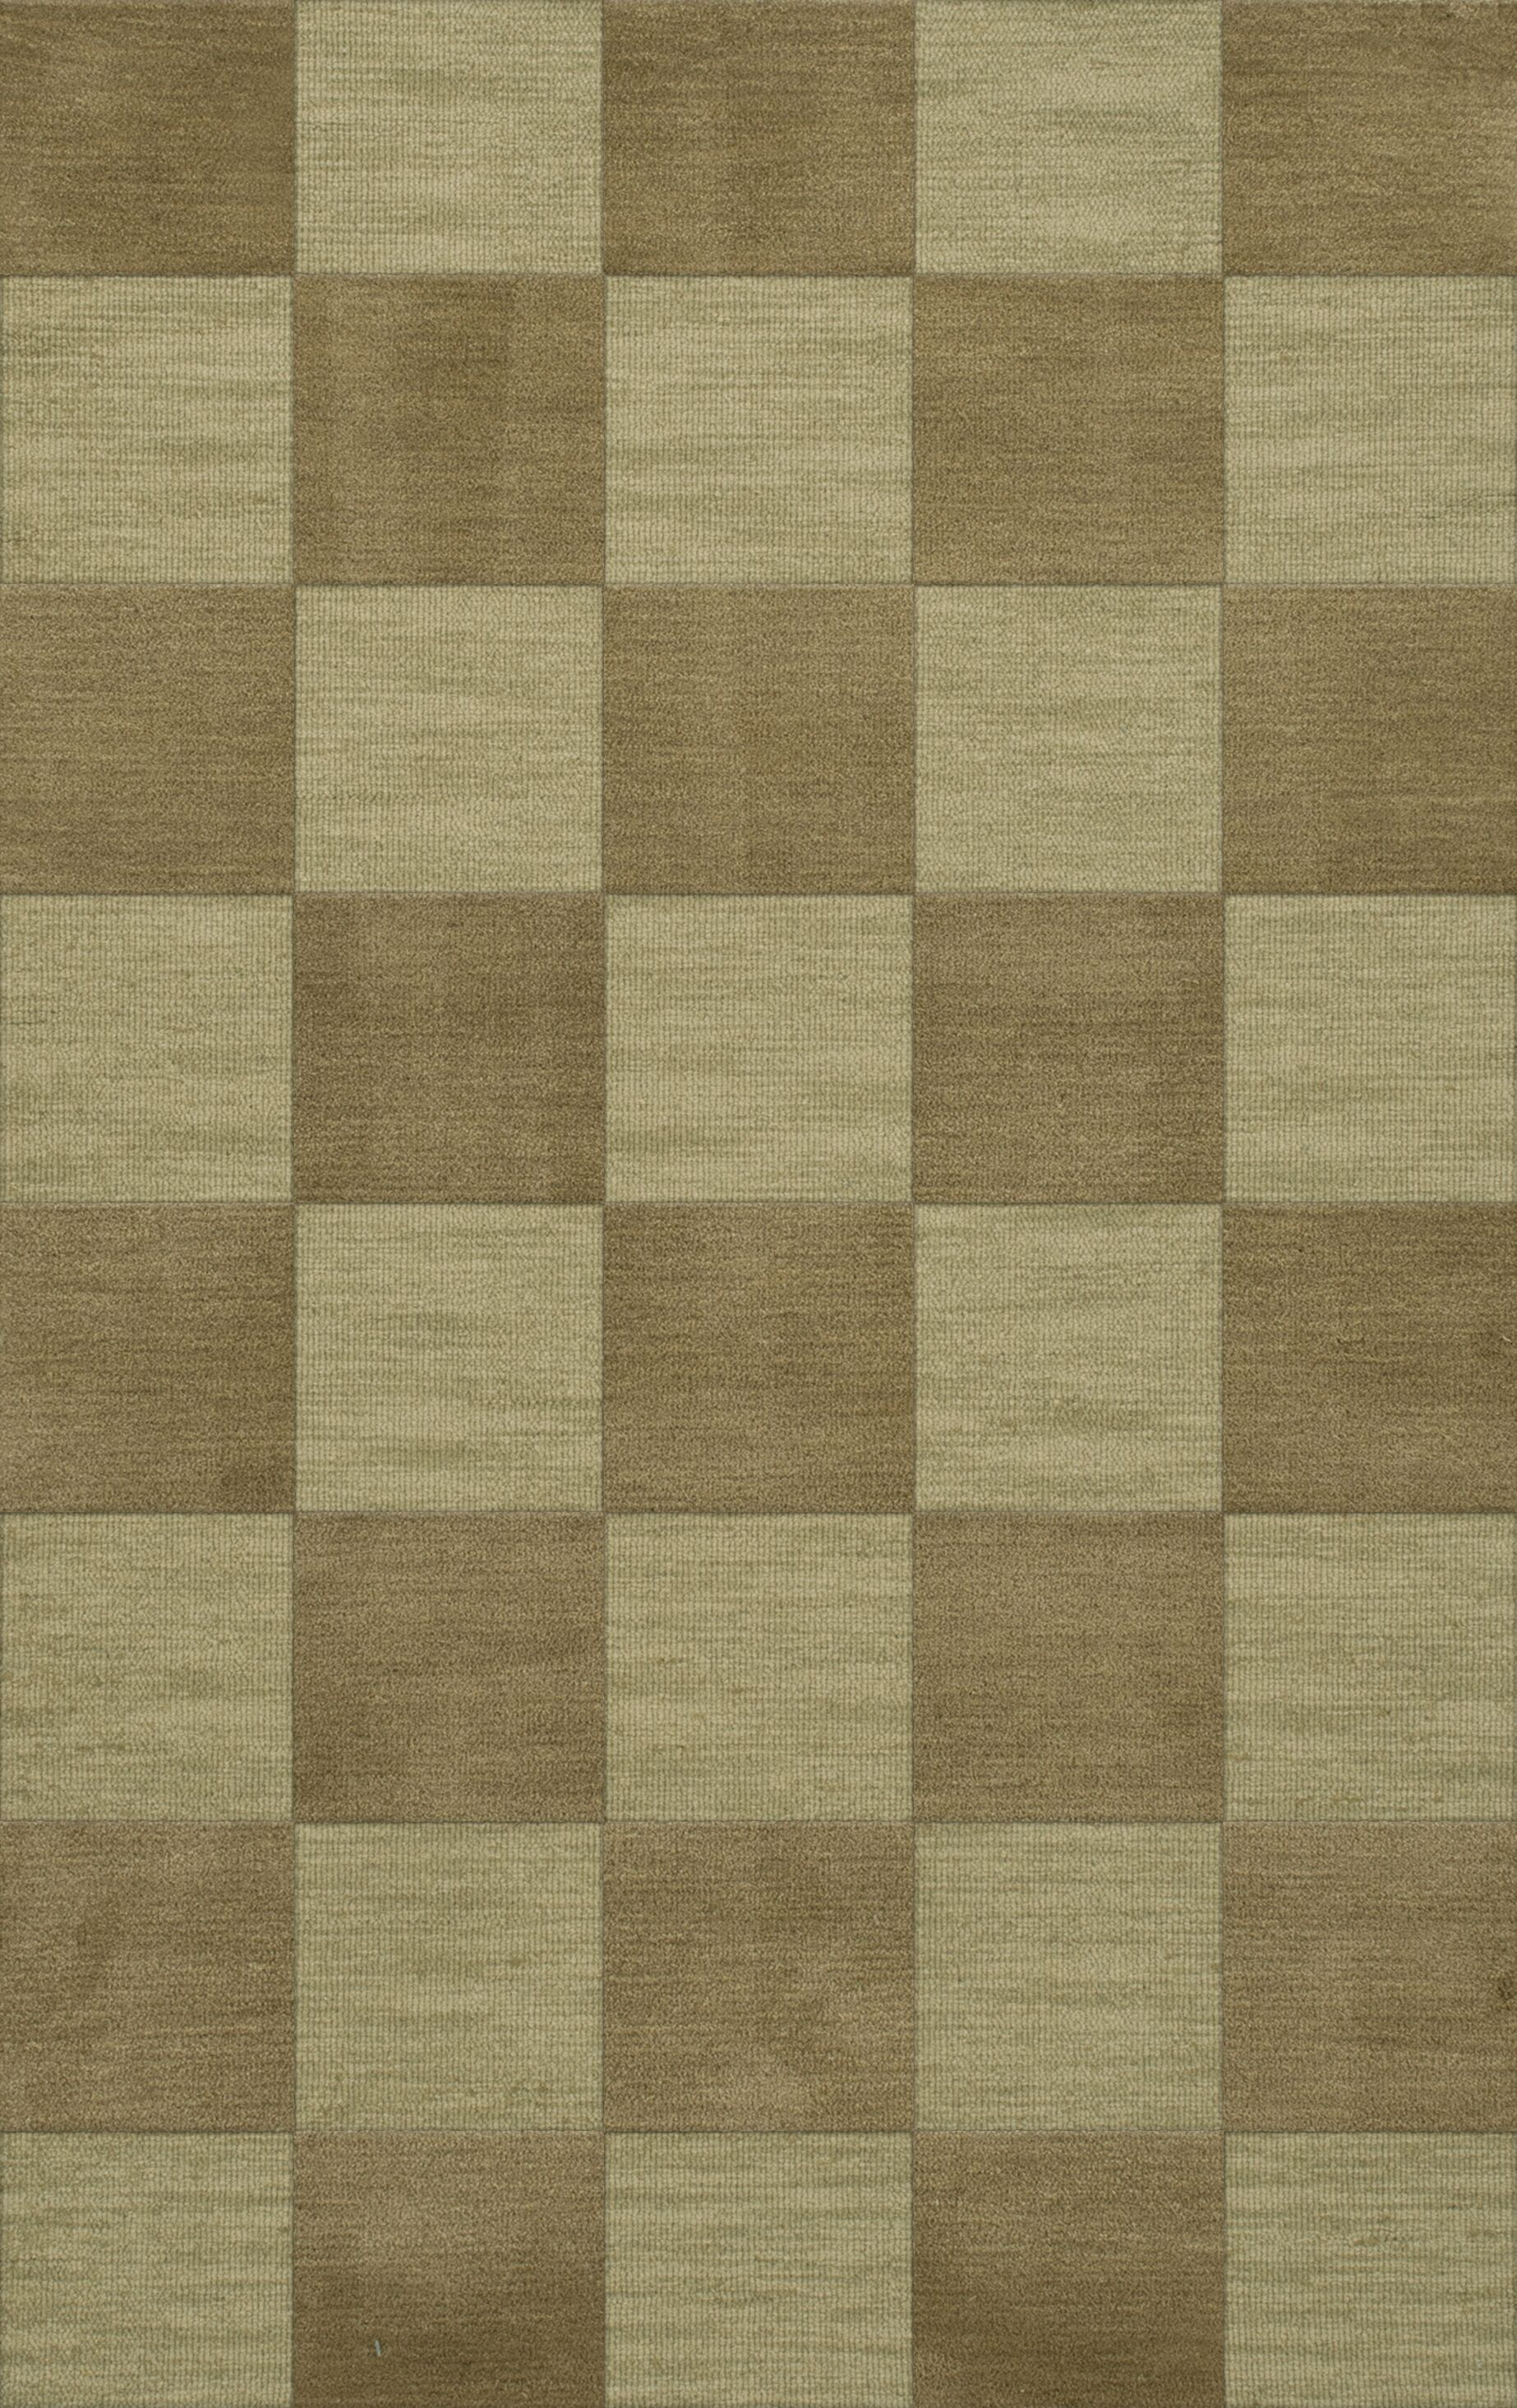 Dover Tufted Wool Marsh Area Rug Rug Size: Rectangle 12' x 18'